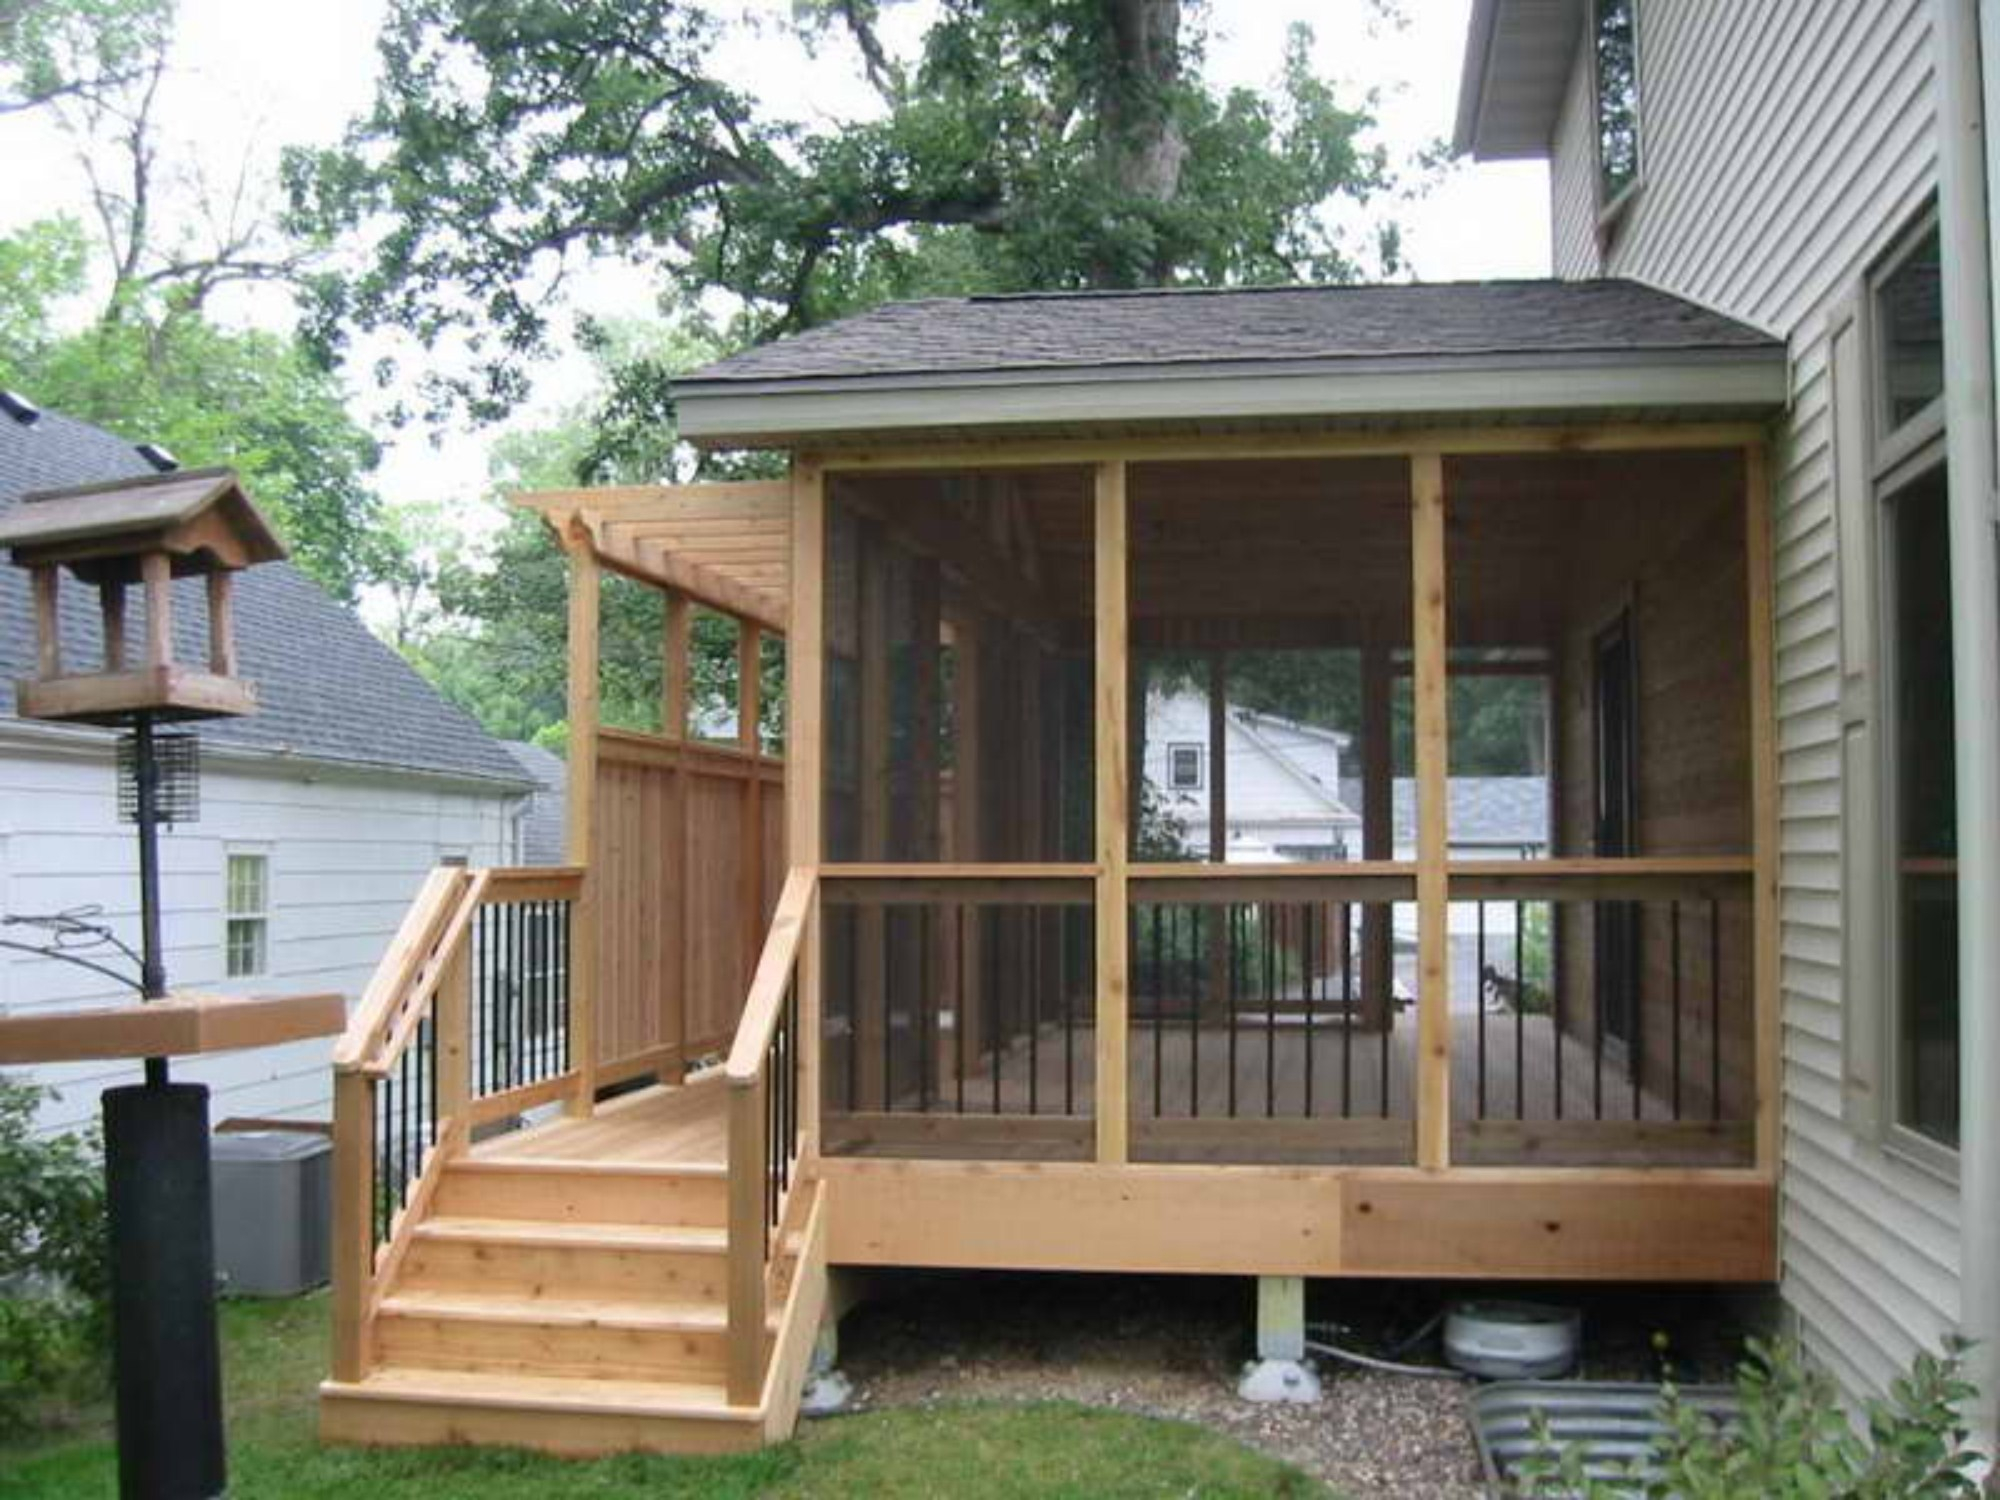 Small Yard Design Manificent Decoration Landscaping Ideas For 2017 intended for Small Deck Ideas For Small Backyards